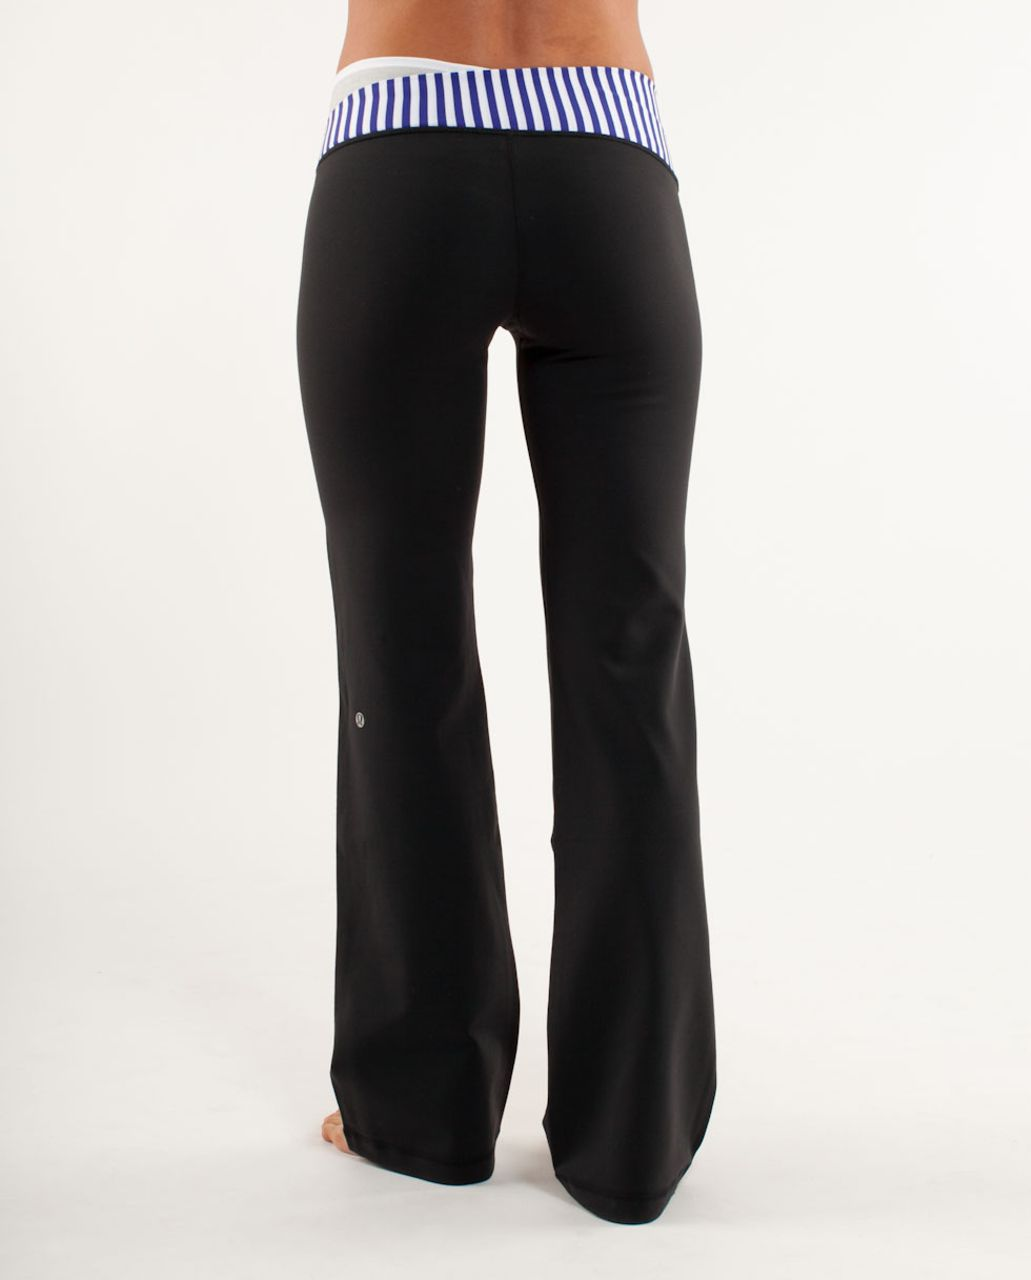 Lululemon Astro Pant (Tall) - Black /  White Silver Spoon Wide Bold Multi Stripe /  Pigment Blue White Narrow Bold Stre